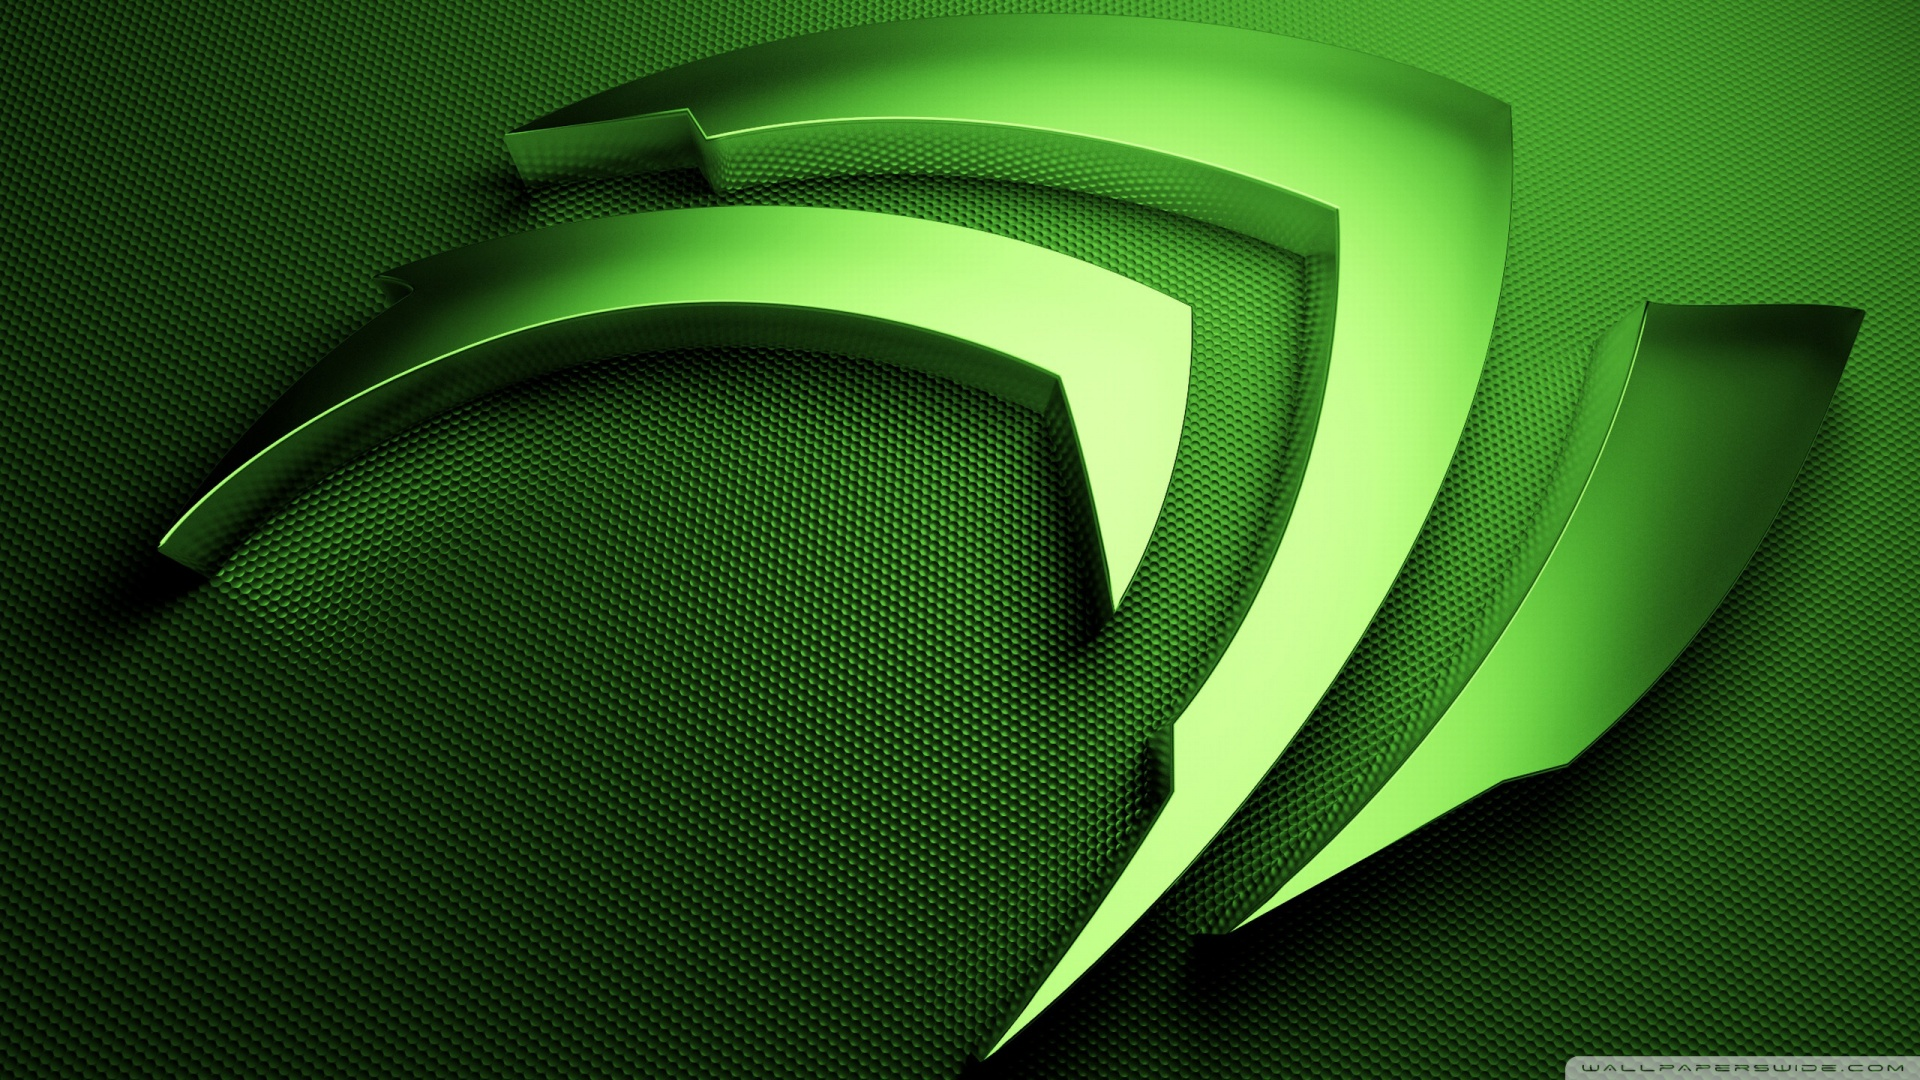 Nvidia Green 4 Wallpaper 1920x1080